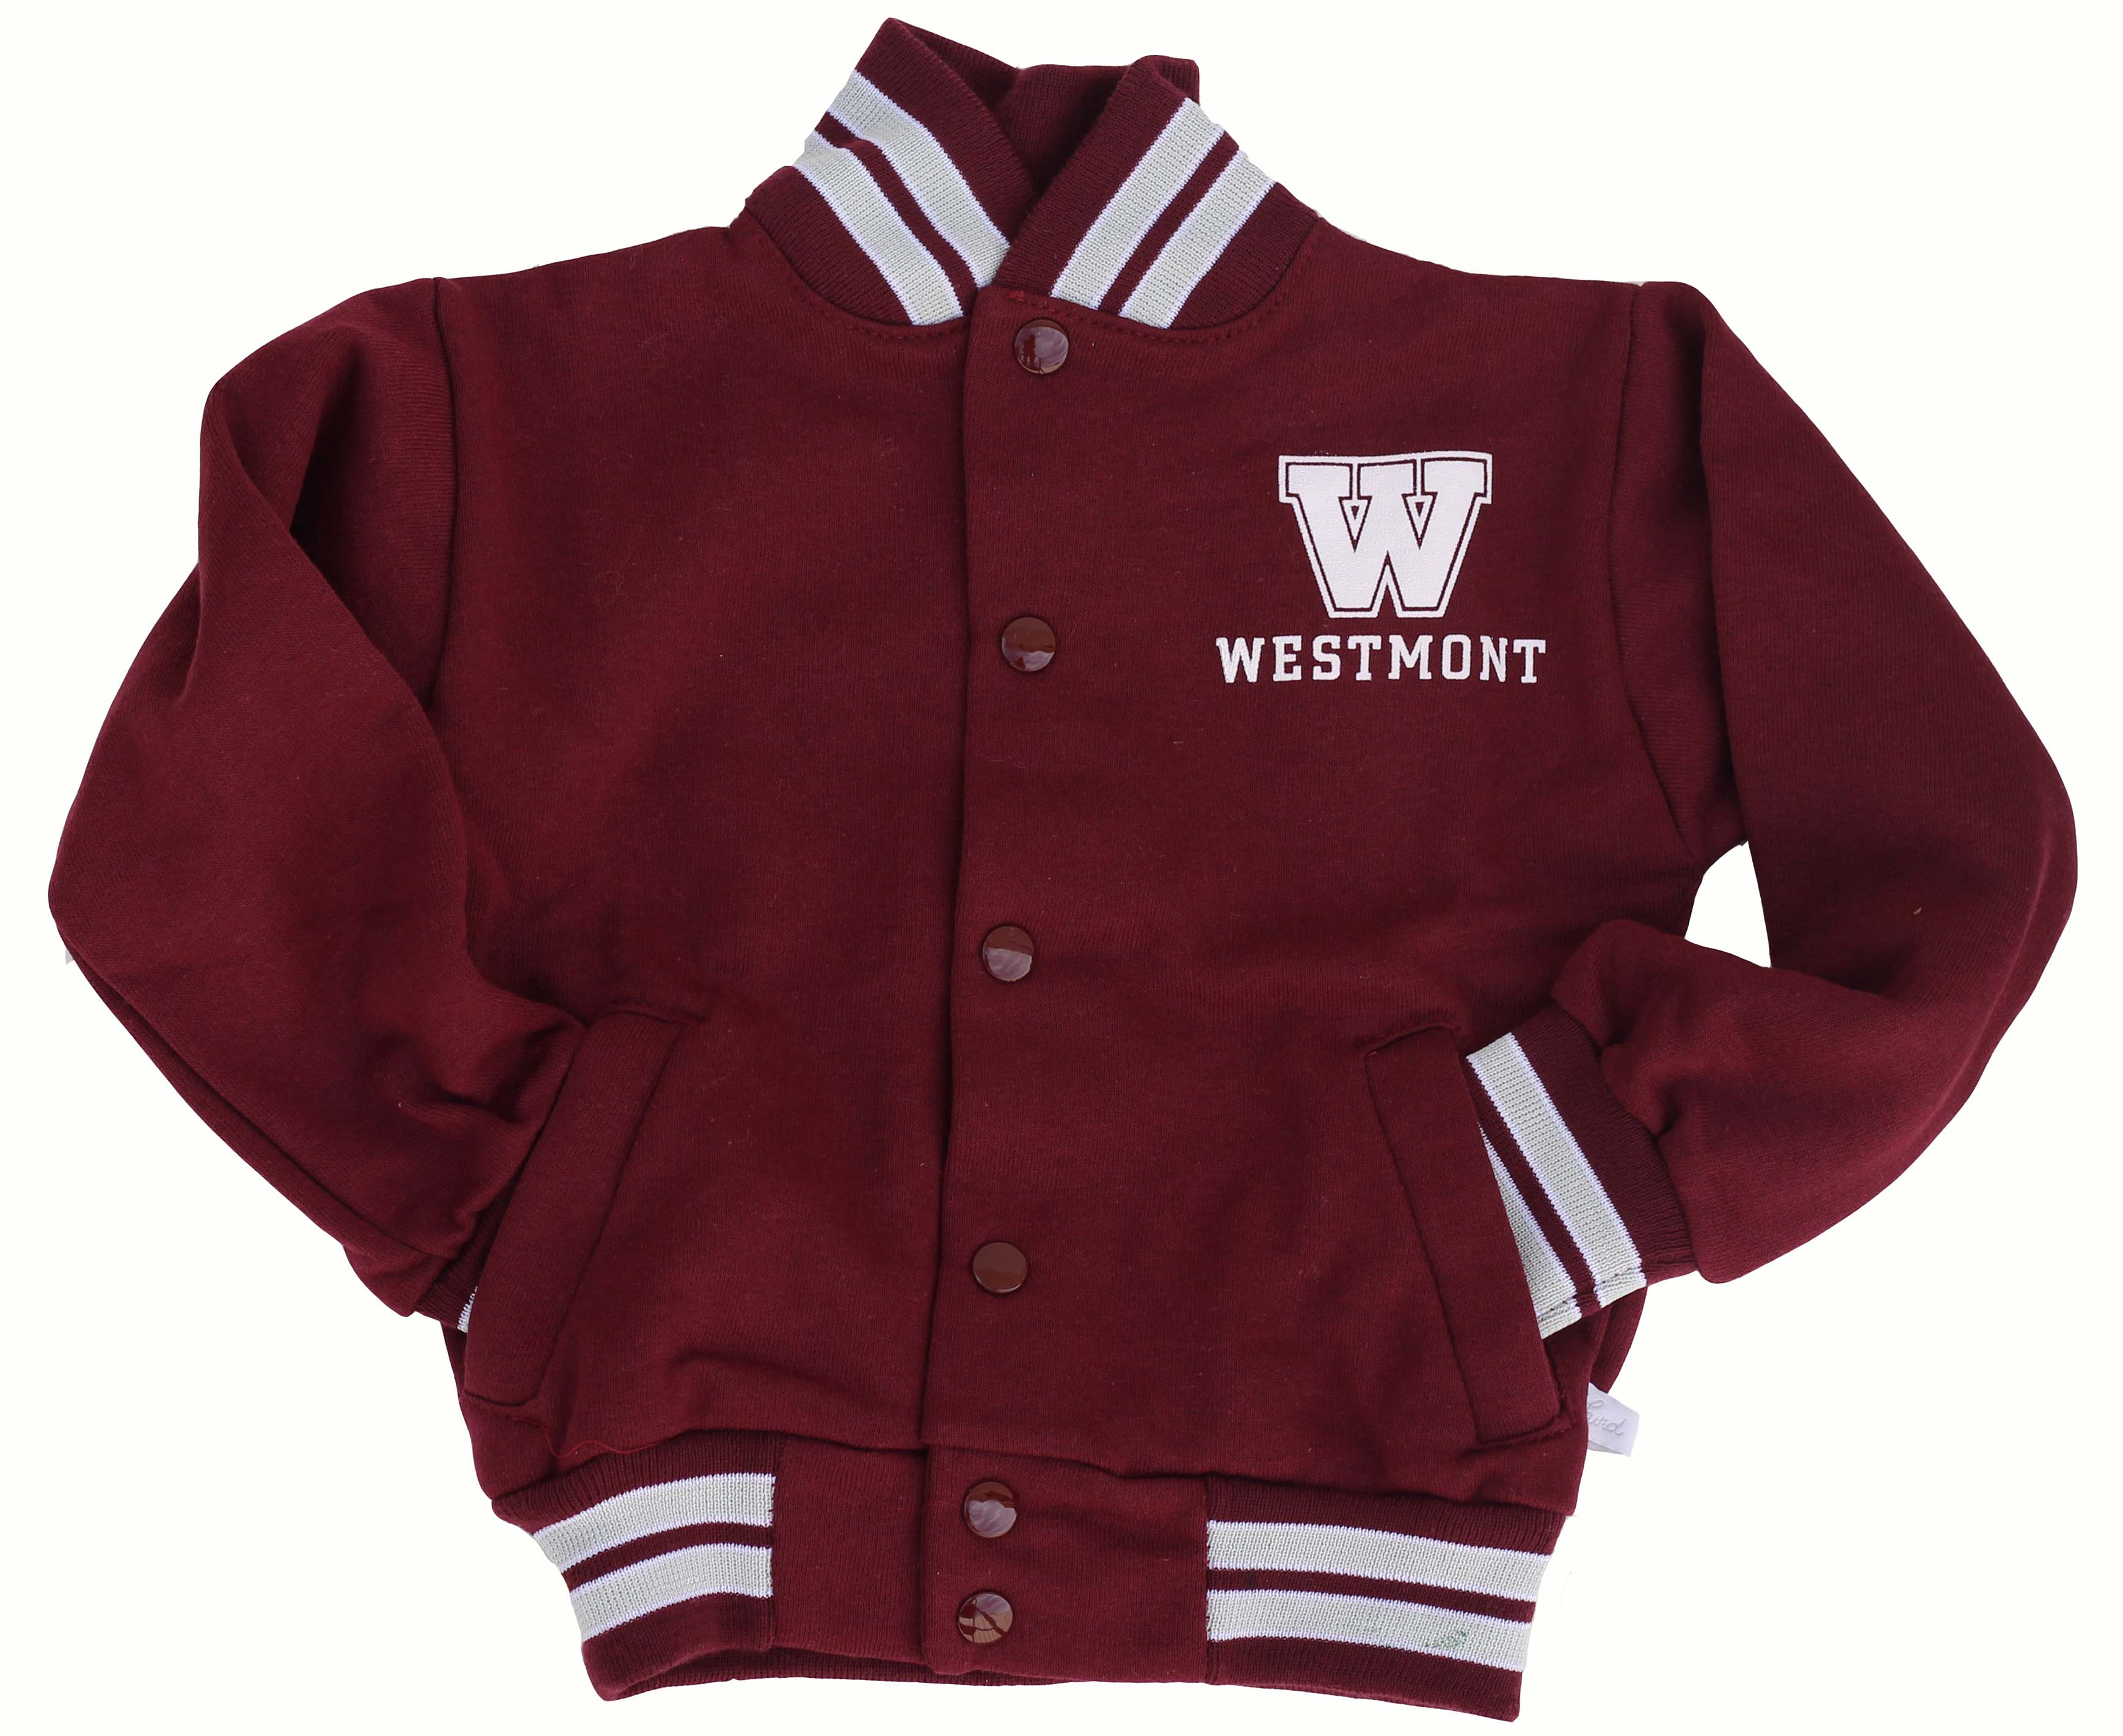 Image for the Third Street Letterman Jacket product